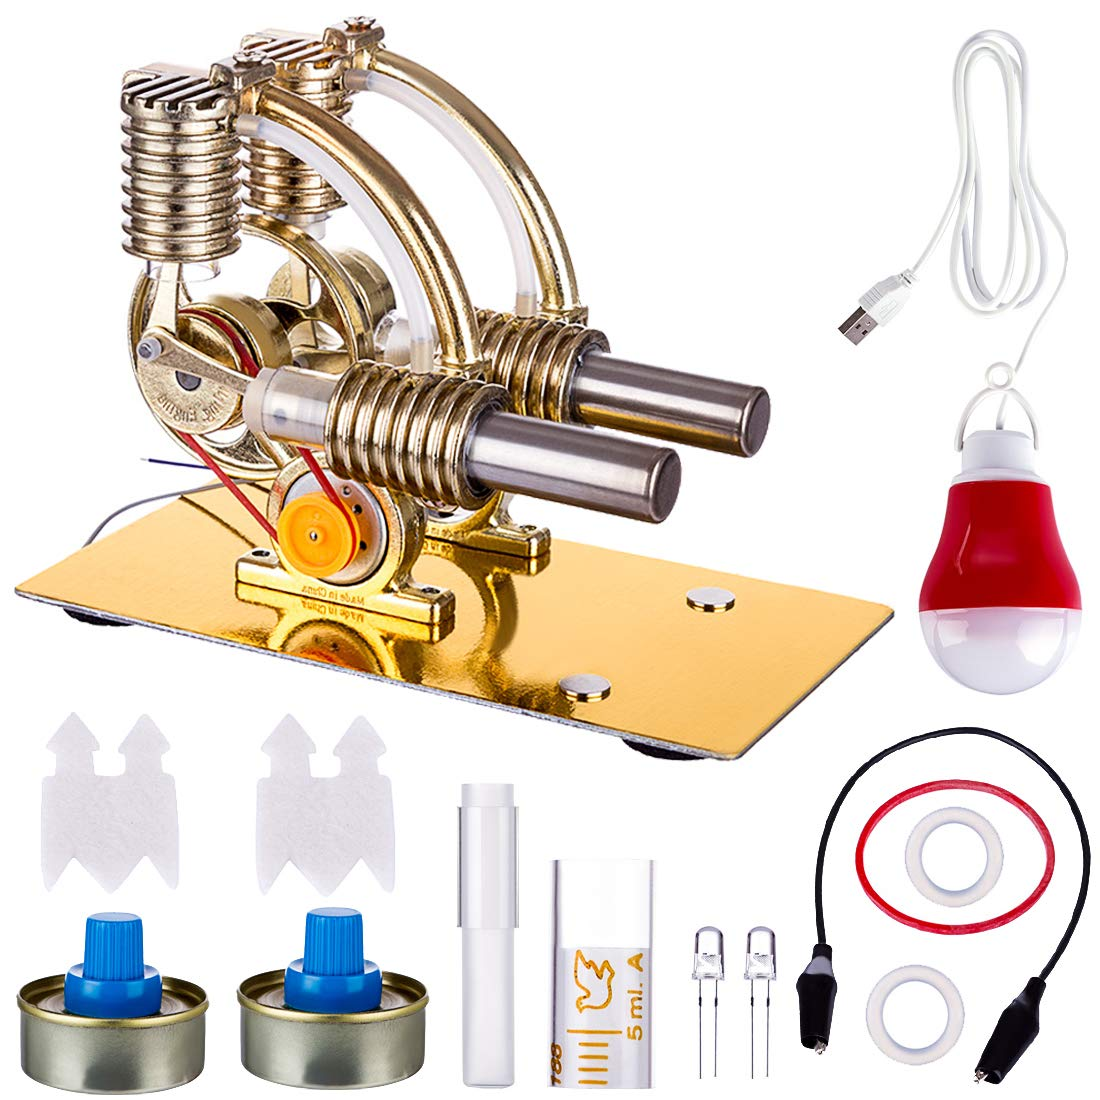 Yamix Stirling Engine Kit, L-Shape Double Cylinders Hot Air Stirling Engine Model with All-Metal Base and Big Bulb (Bulb Random Color)